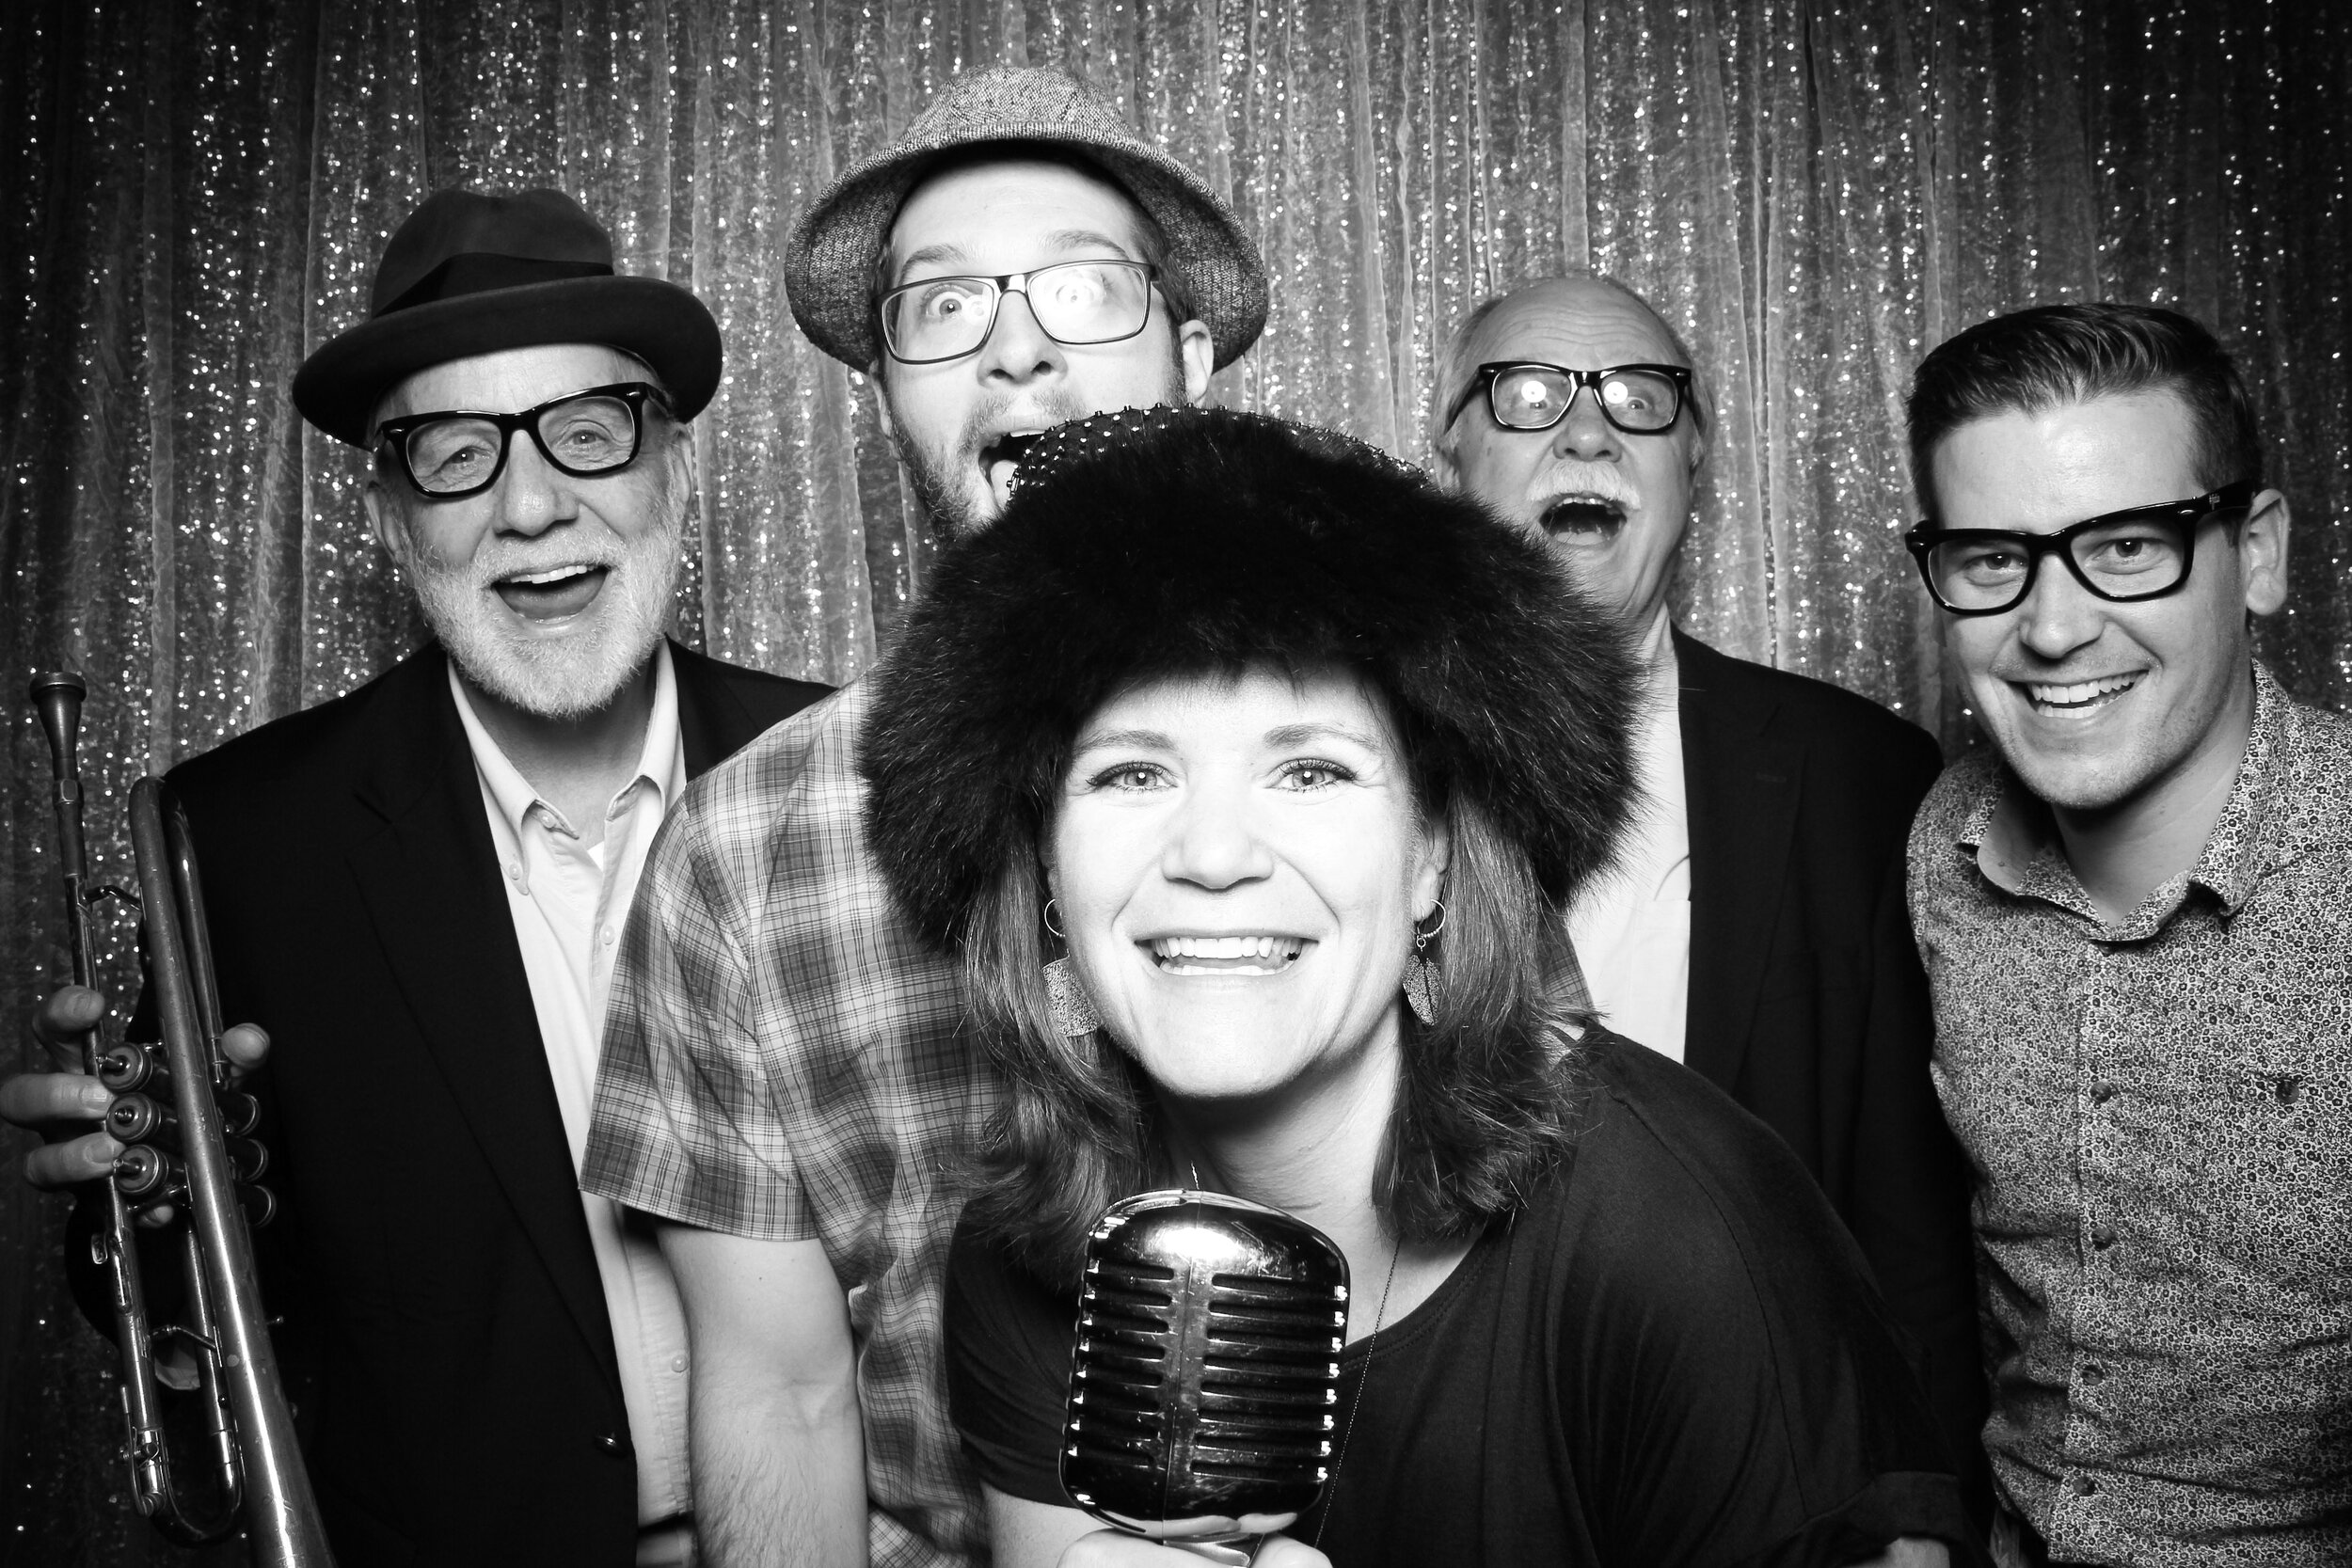 Chicago_Vintage_Wedding_Photobooth_House_of_Blues_26.jpg